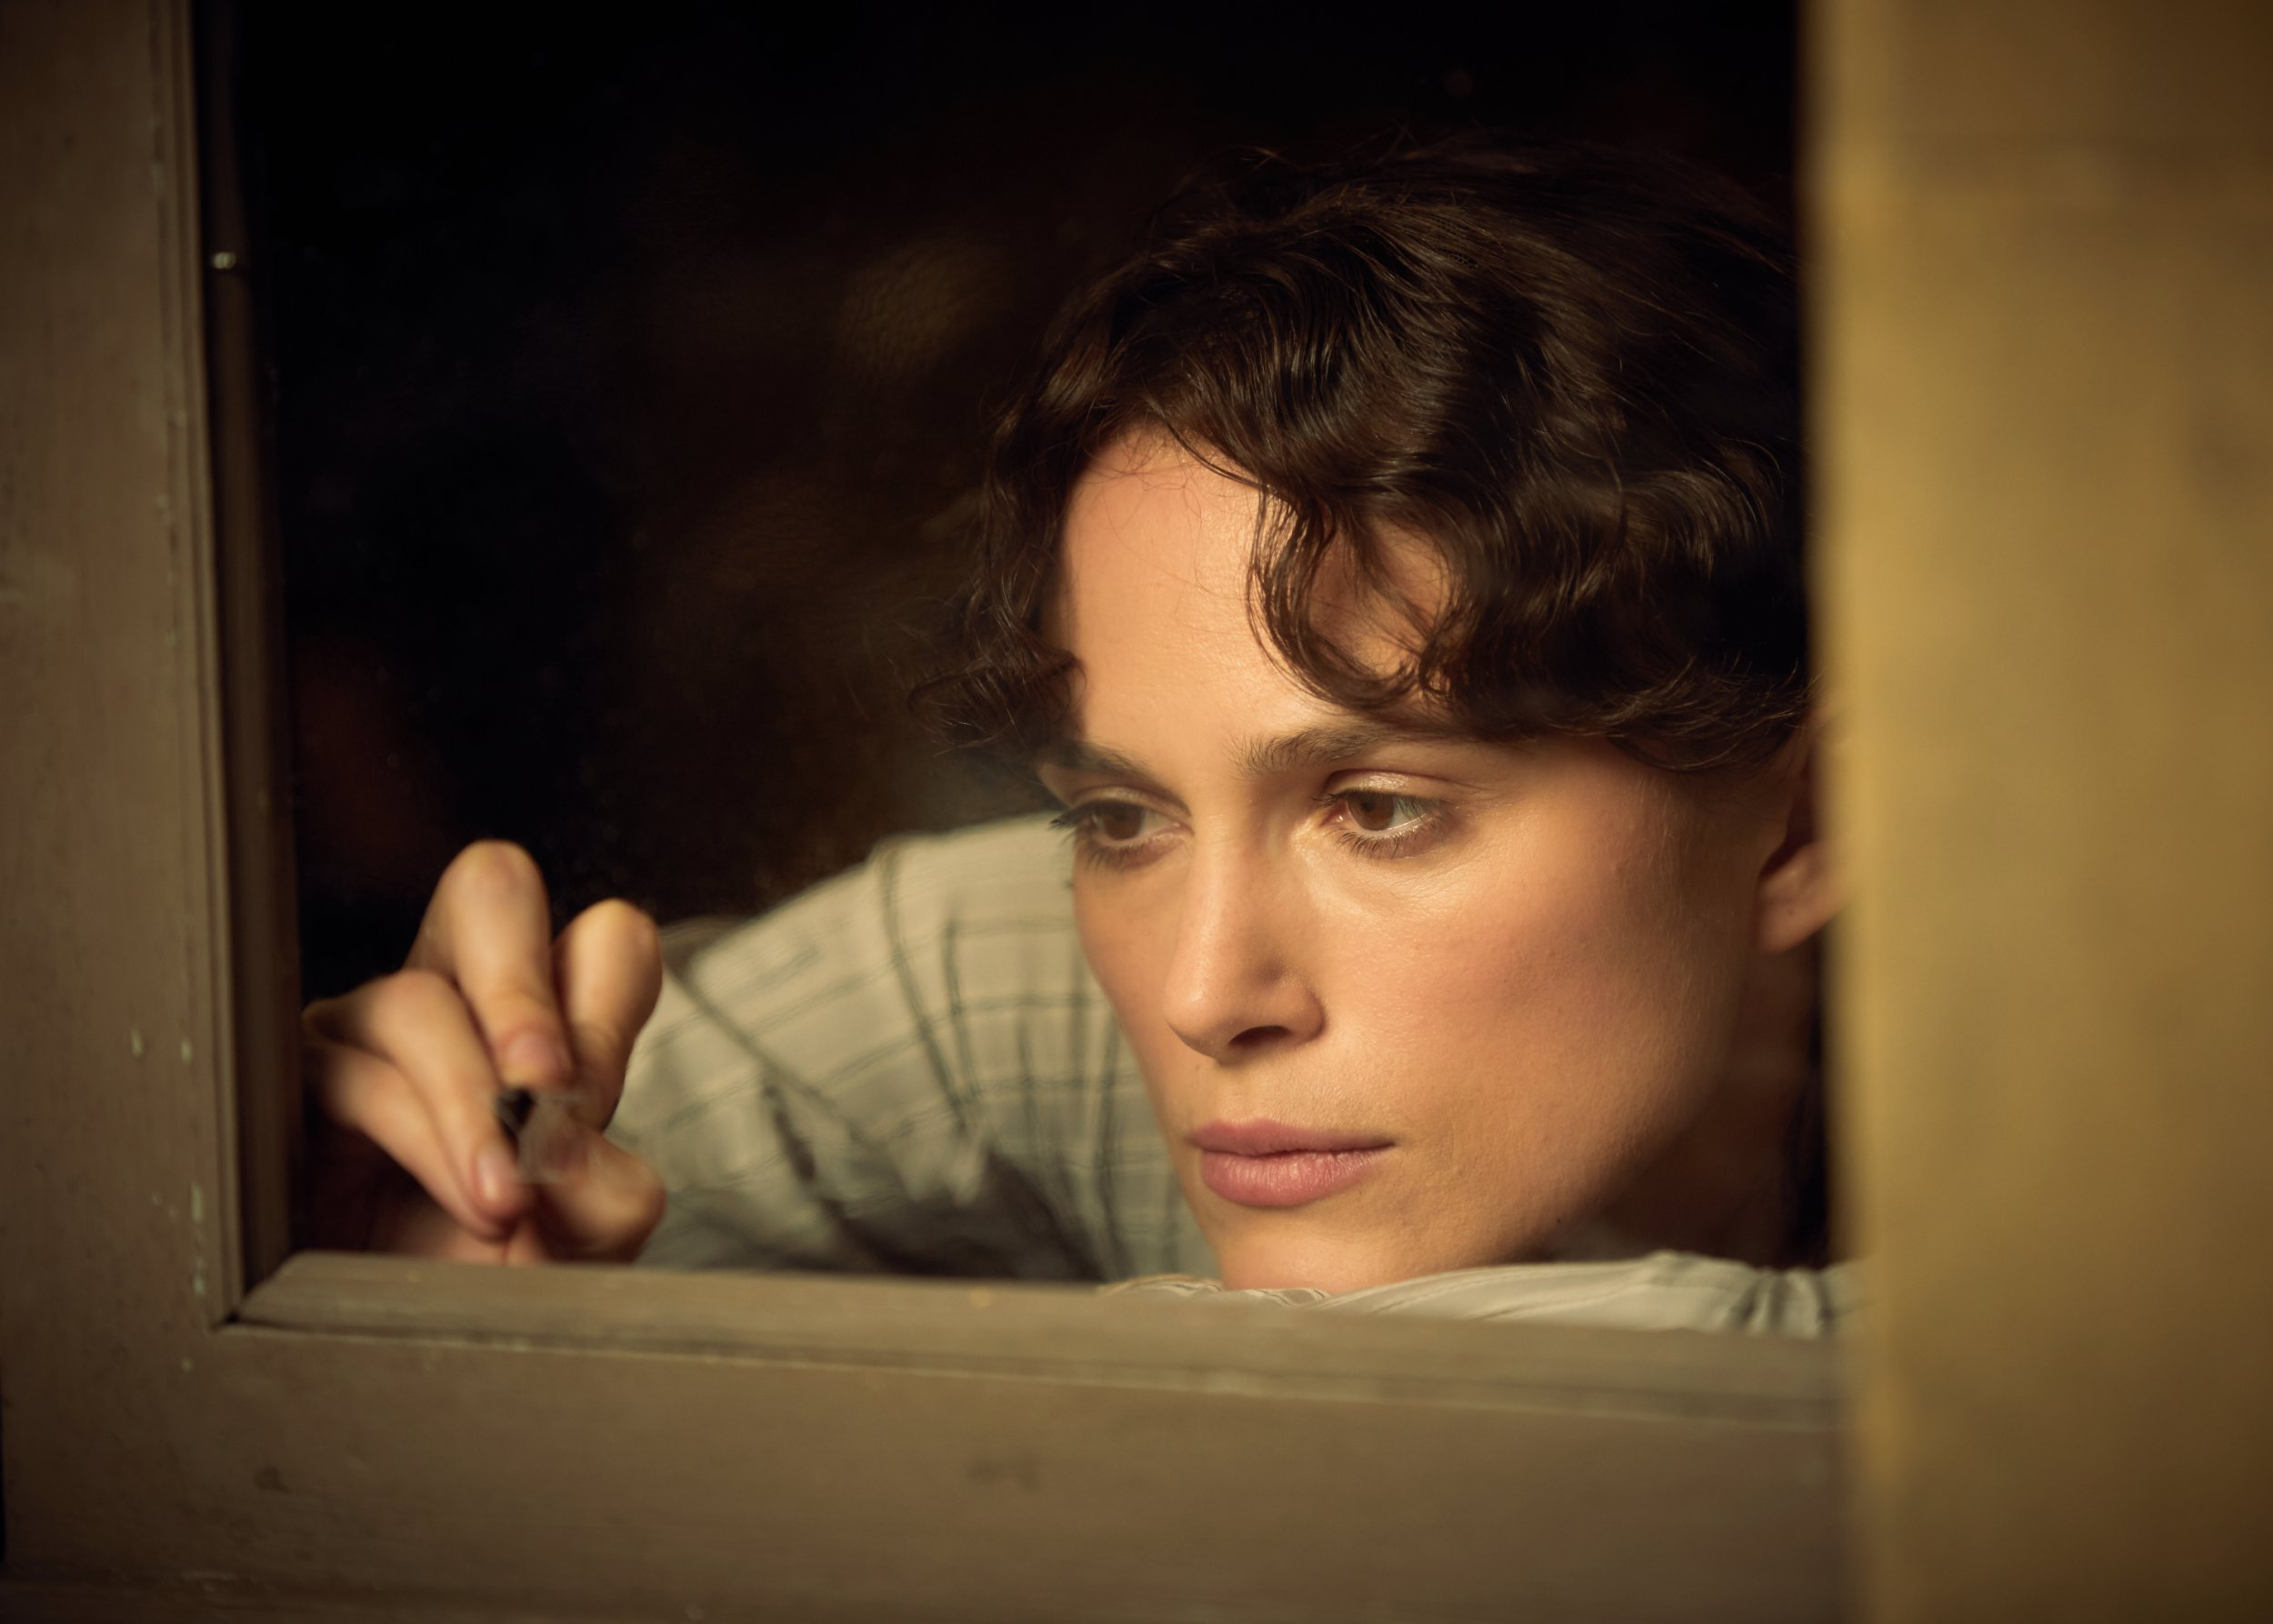 Keira Knightley's Colette locked in room and forced to work by husband in disturbing scenes